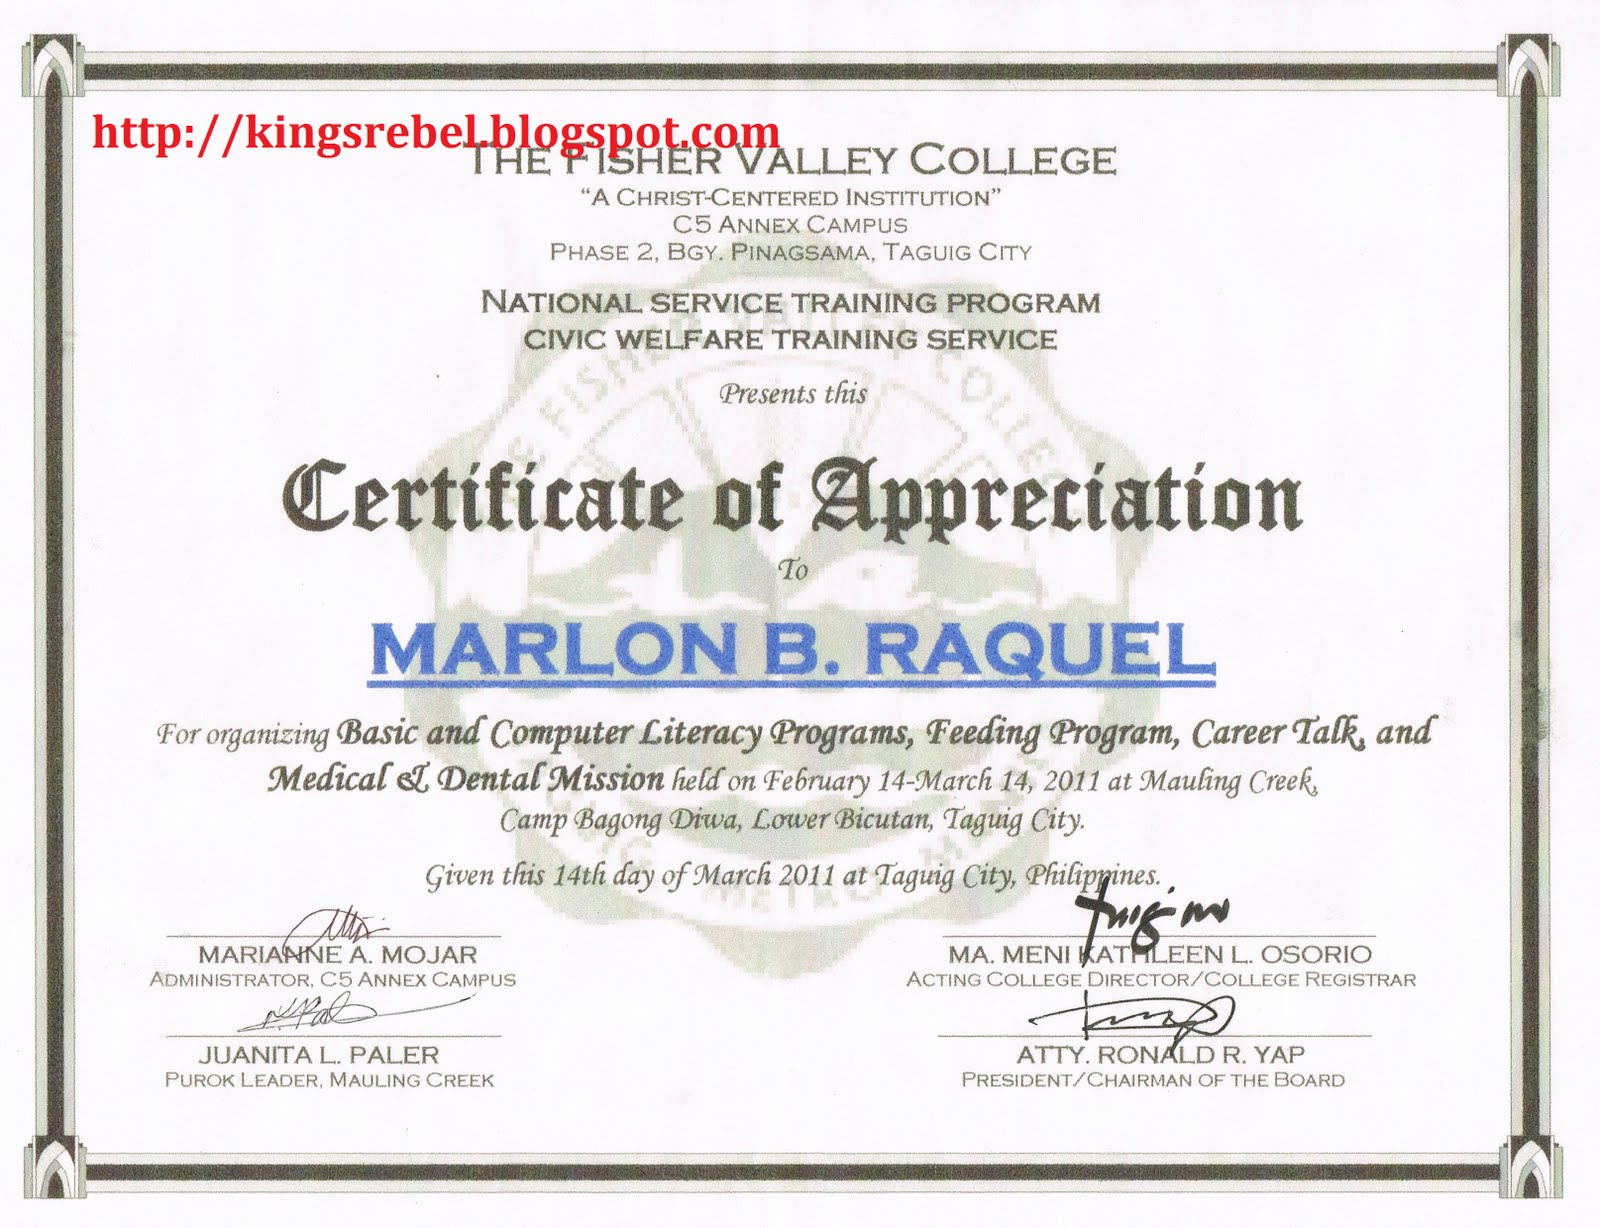 Examples of Certificate of Appreciation http://kingsrebel.blogspot.com/2011/02/example-of-certificate-of-appreciation_23.html